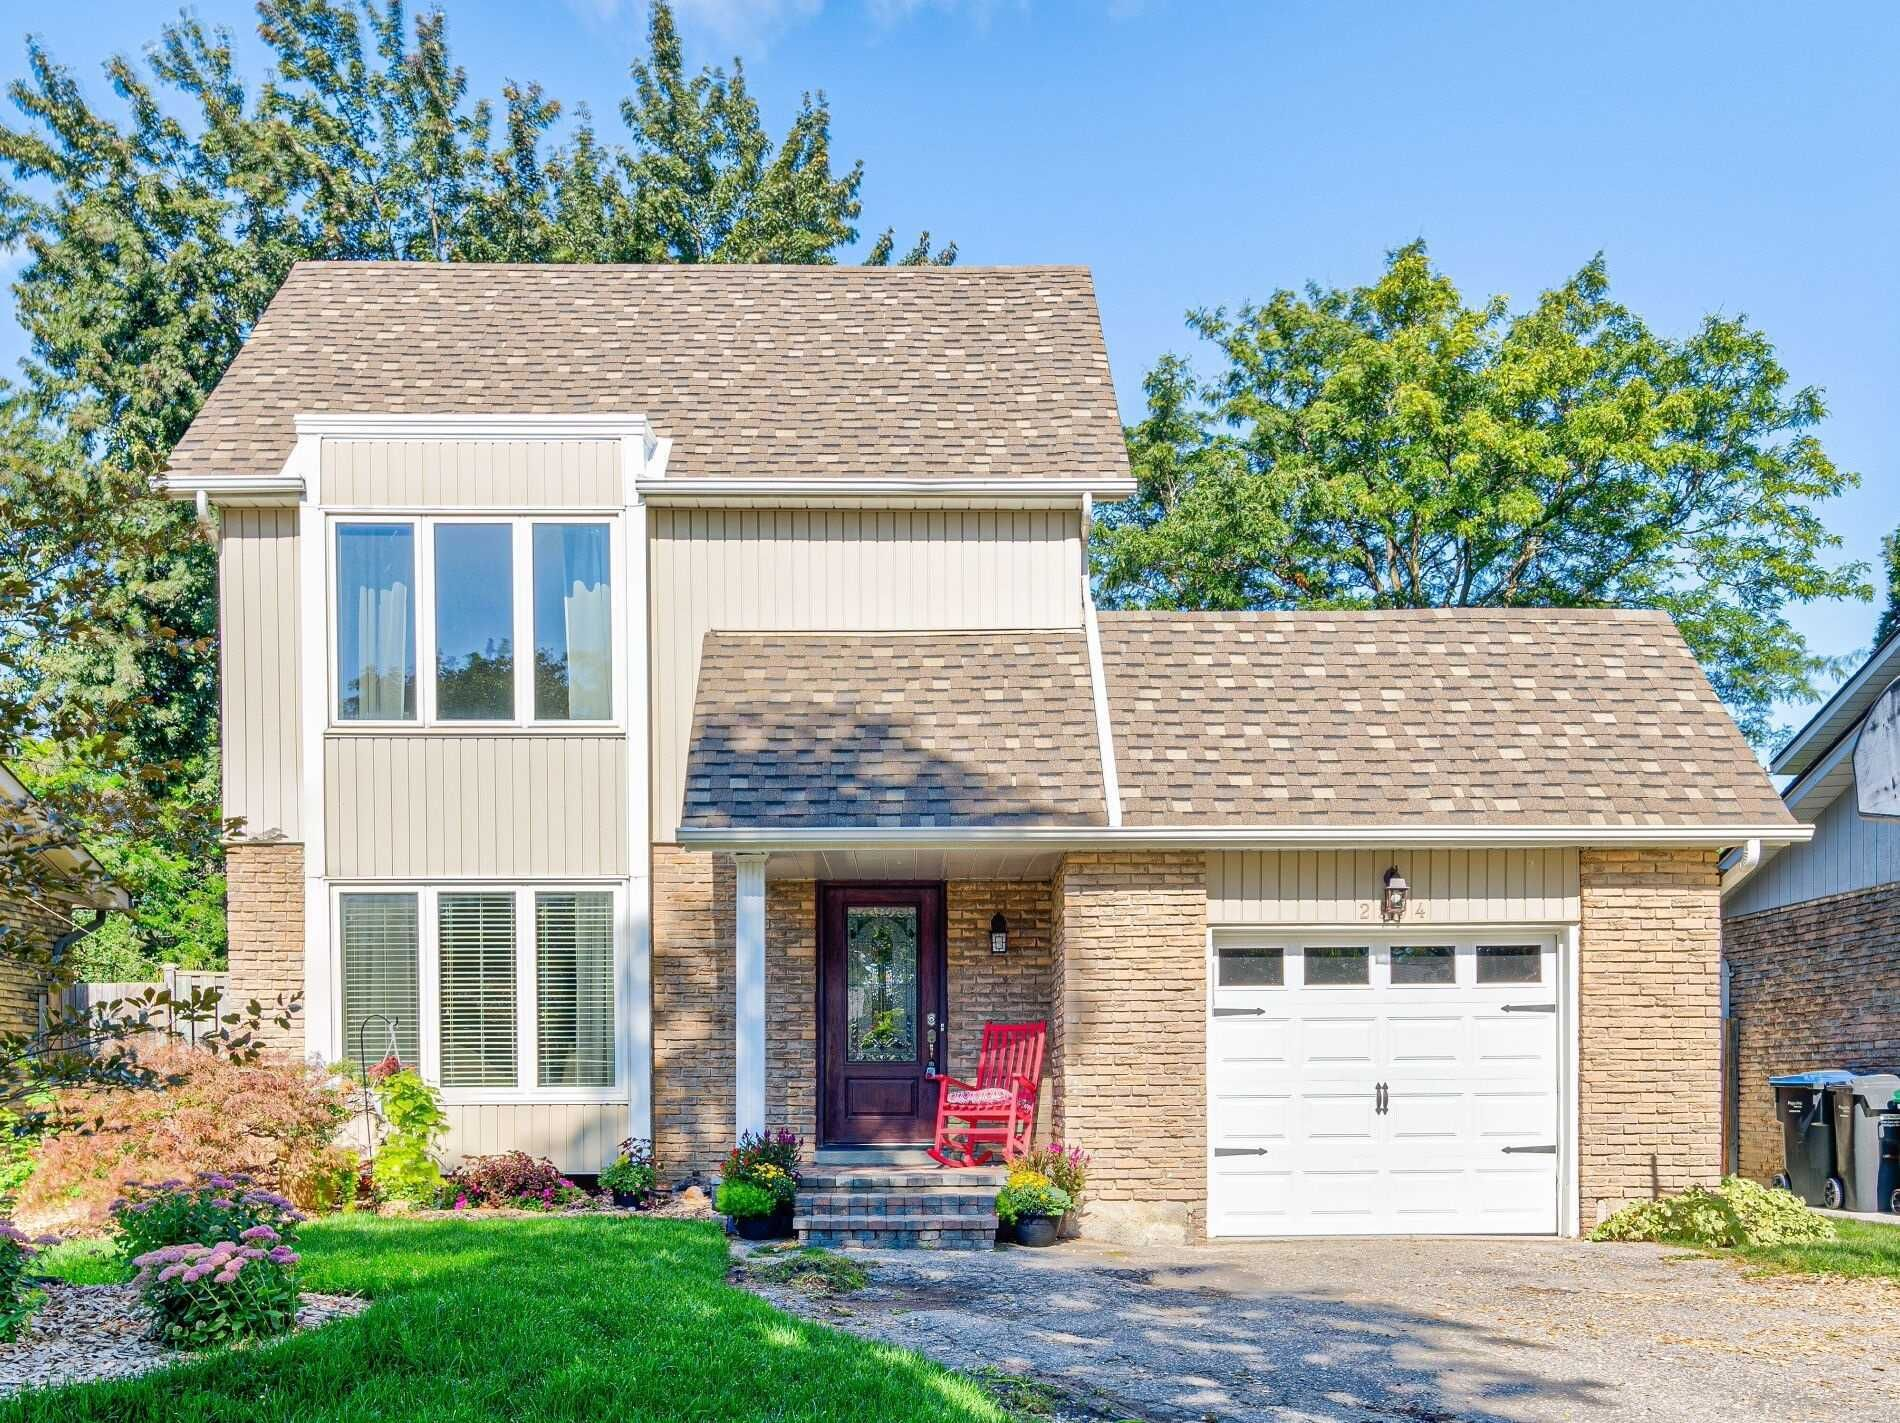 Main Photo: 2994 Oslo Crescent in Mississauga: Meadowvale House (2-Storey) for sale : MLS®# W5367599